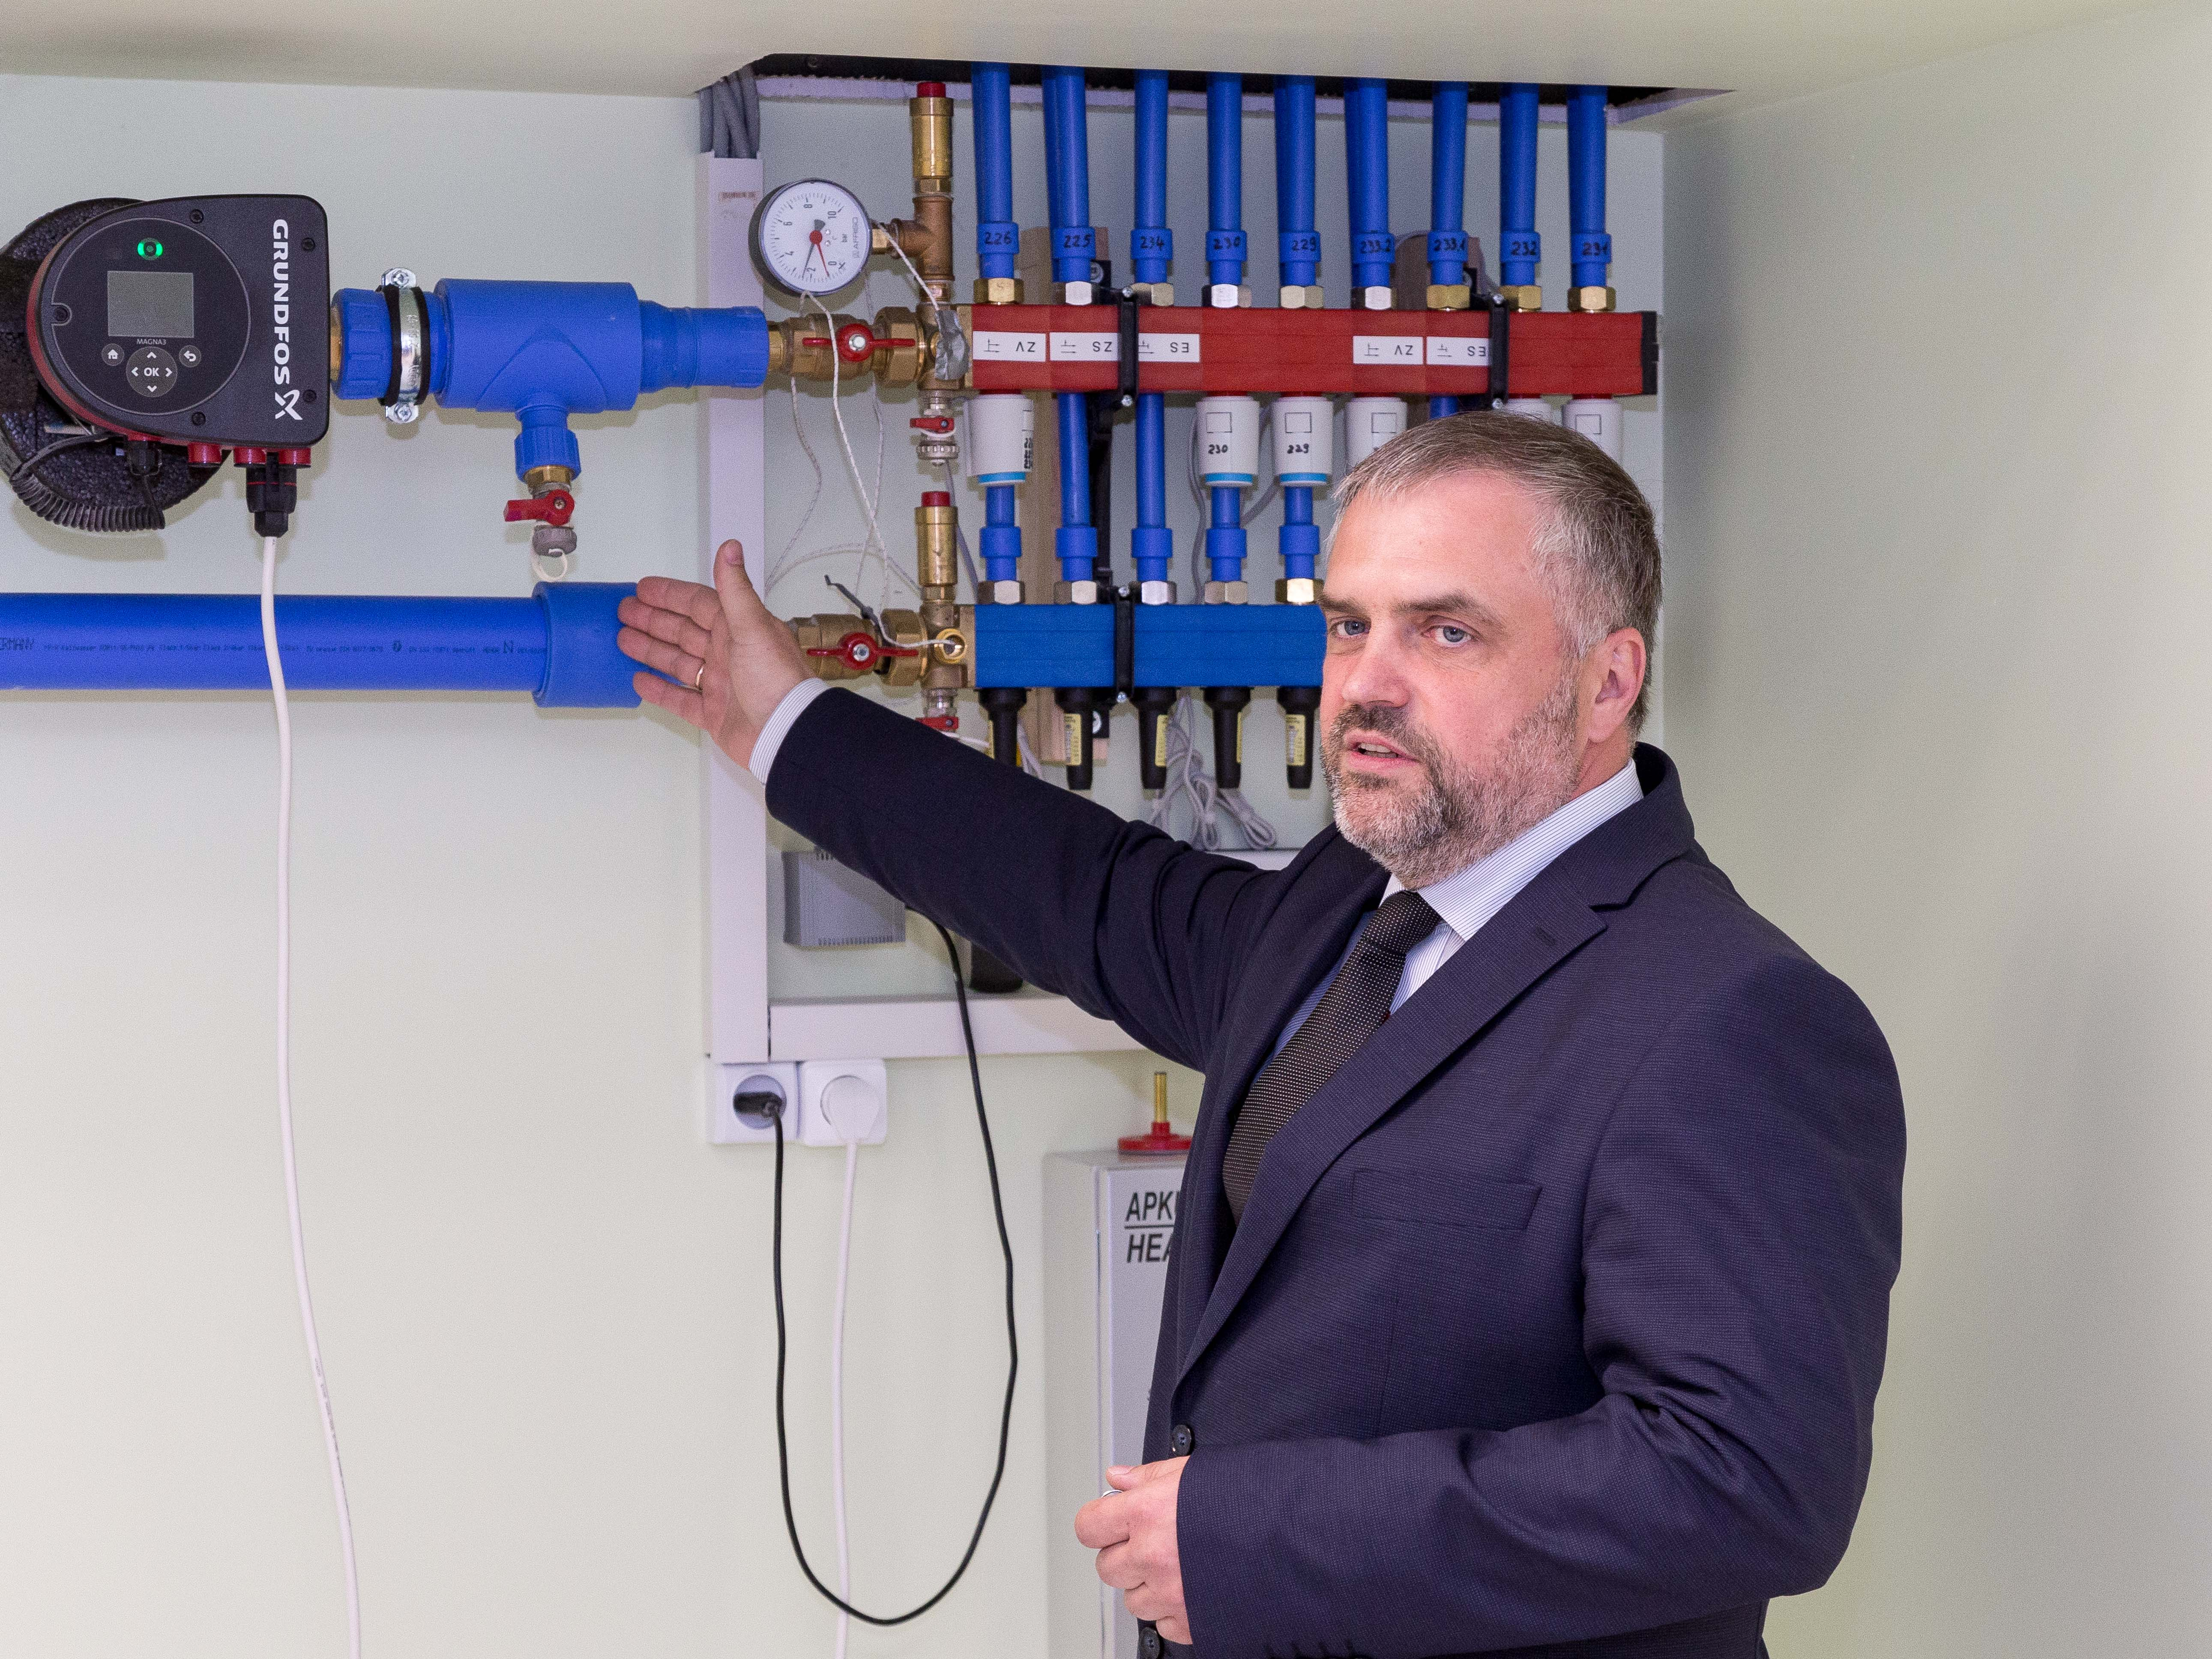 News As Wasserkabel Baltic Control Panel Wiring Jobs Project Production Facility Of Capillary Tube Mats In Latvia Id No Nofi Lv06 Ak2 14 Financing Agreement Np 2015 24 Is Being Implemented Through A